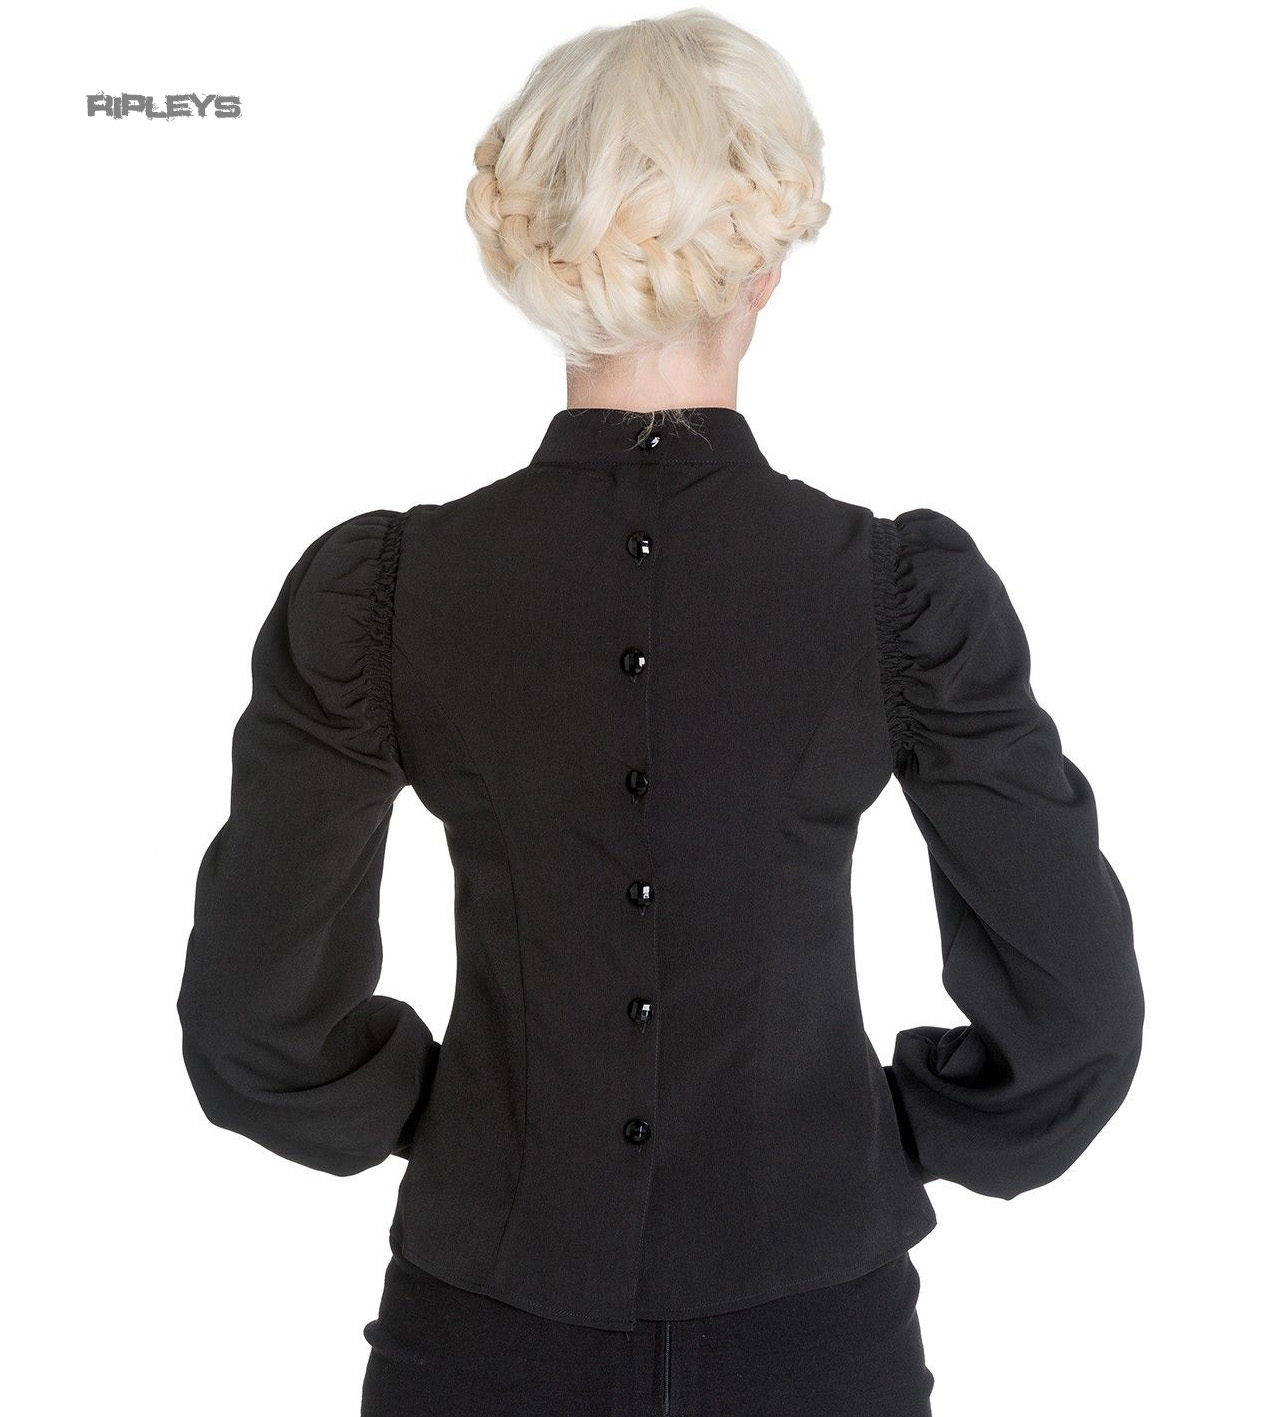 Hell-Bunny-Spin-Doctor-Vampire-Gothic-Shirt-Top-MELROSE-Blouse-All-Sizes thumbnail 8